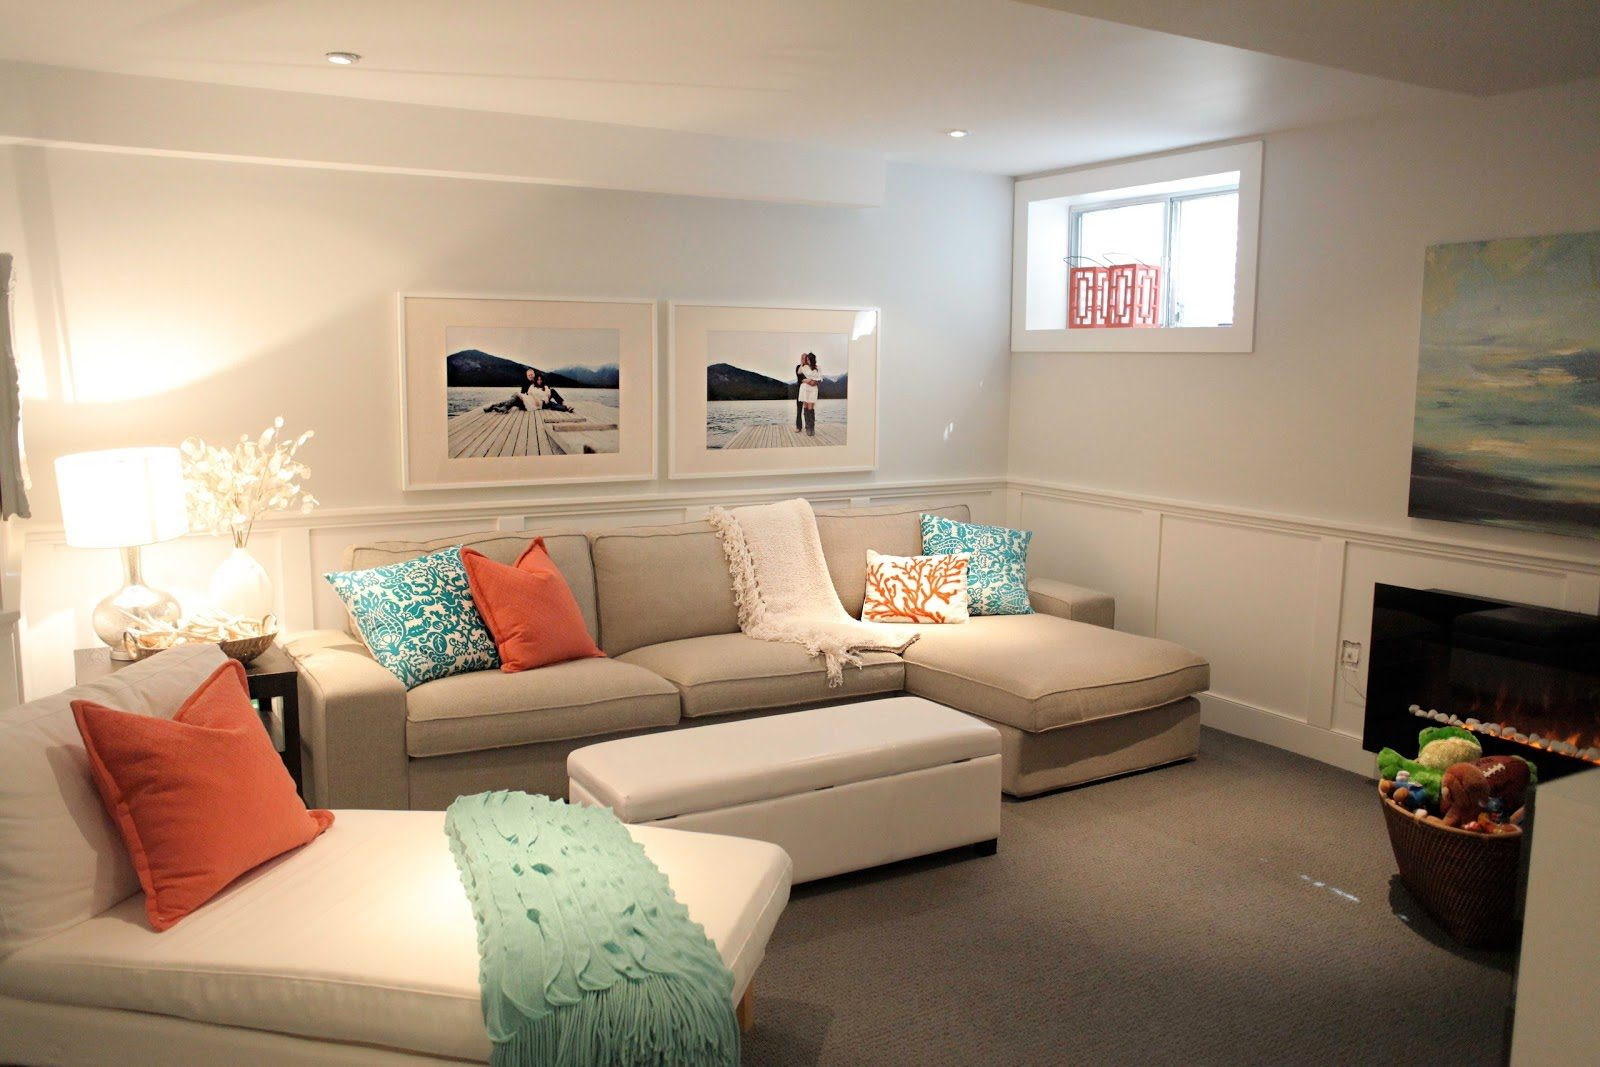 Best ideas about Small Family Room Ideas . Save or Pin Sofa For Small Space Living Room Ideas Now.